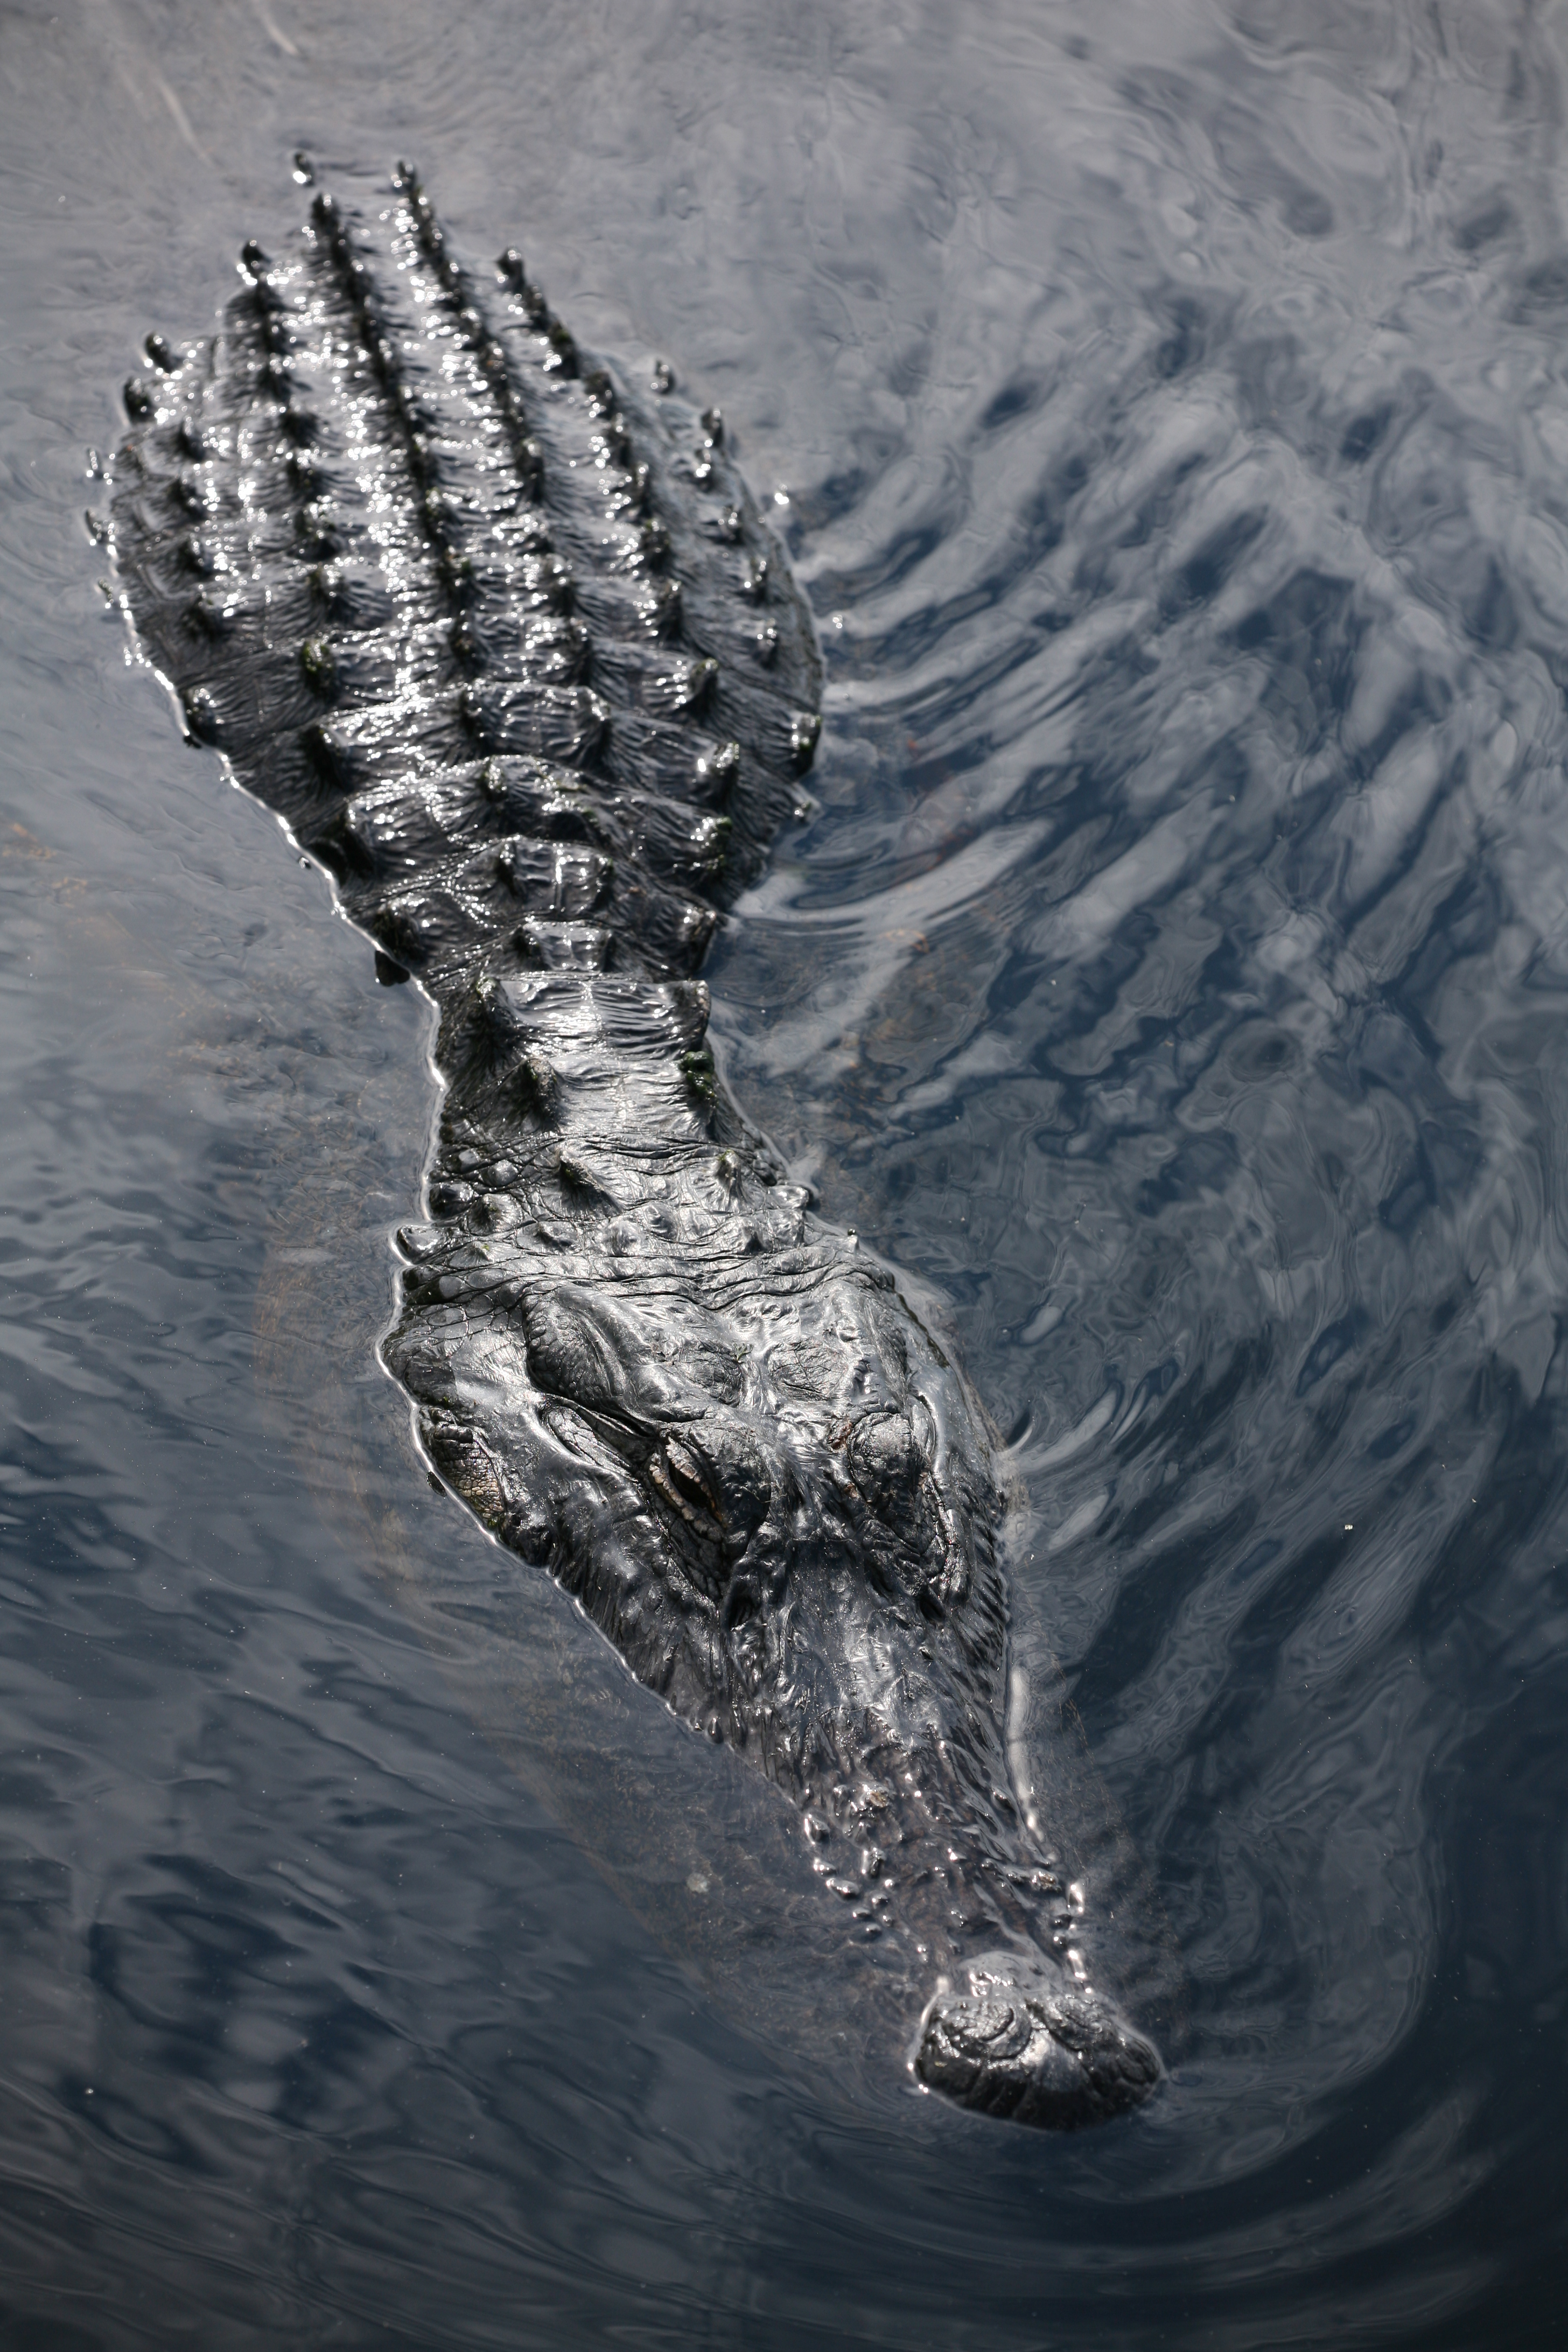 FIGURE 1. Partially submerged alligator, seen from above. Image courtesy of Wikisource.